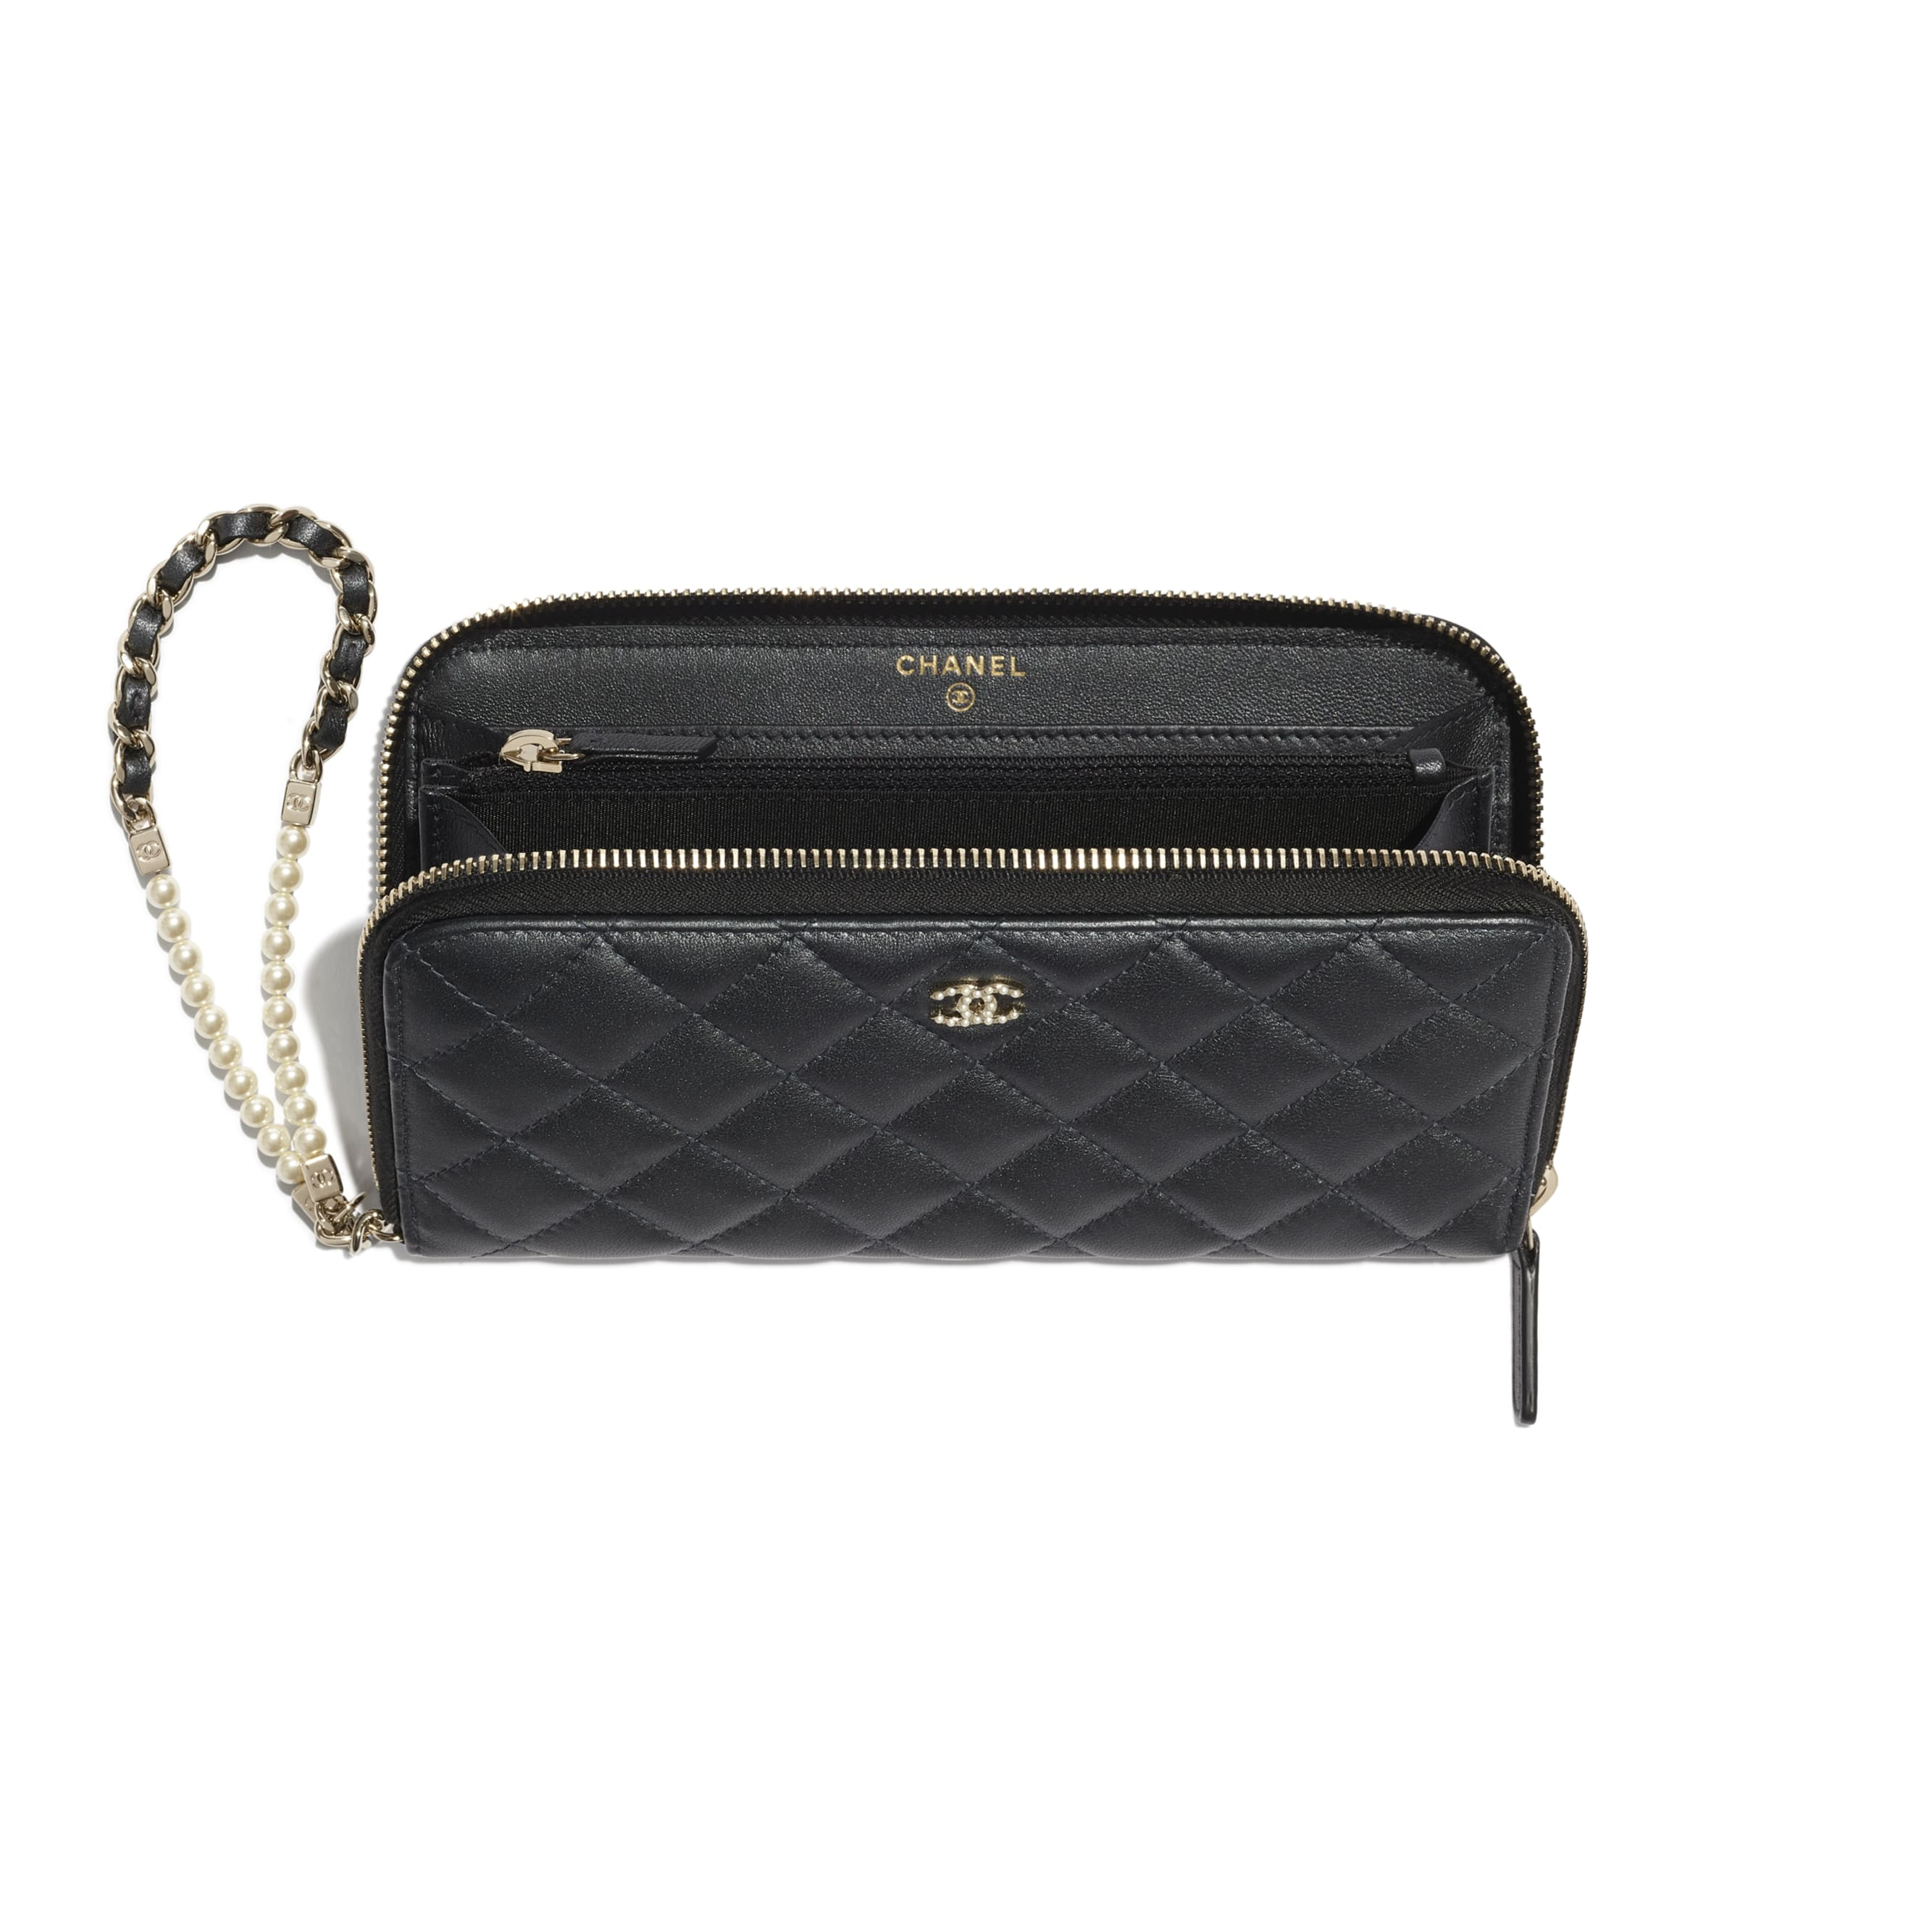 Zipped Wallet With Handle - Black - Iridescent lambskin & gold-tone metal - CHANEL - Other view - see standard sized version